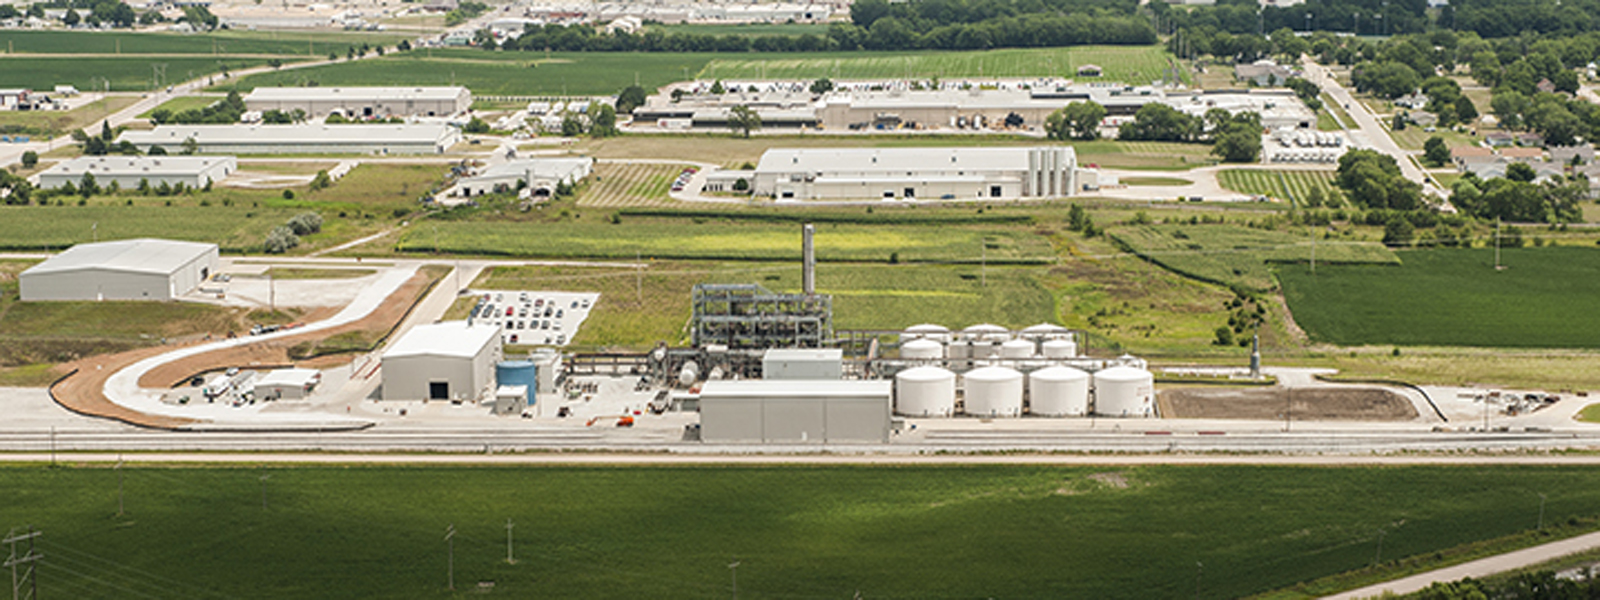 Innovative Biodiesel Technology To Be Used at Nebraska Plant